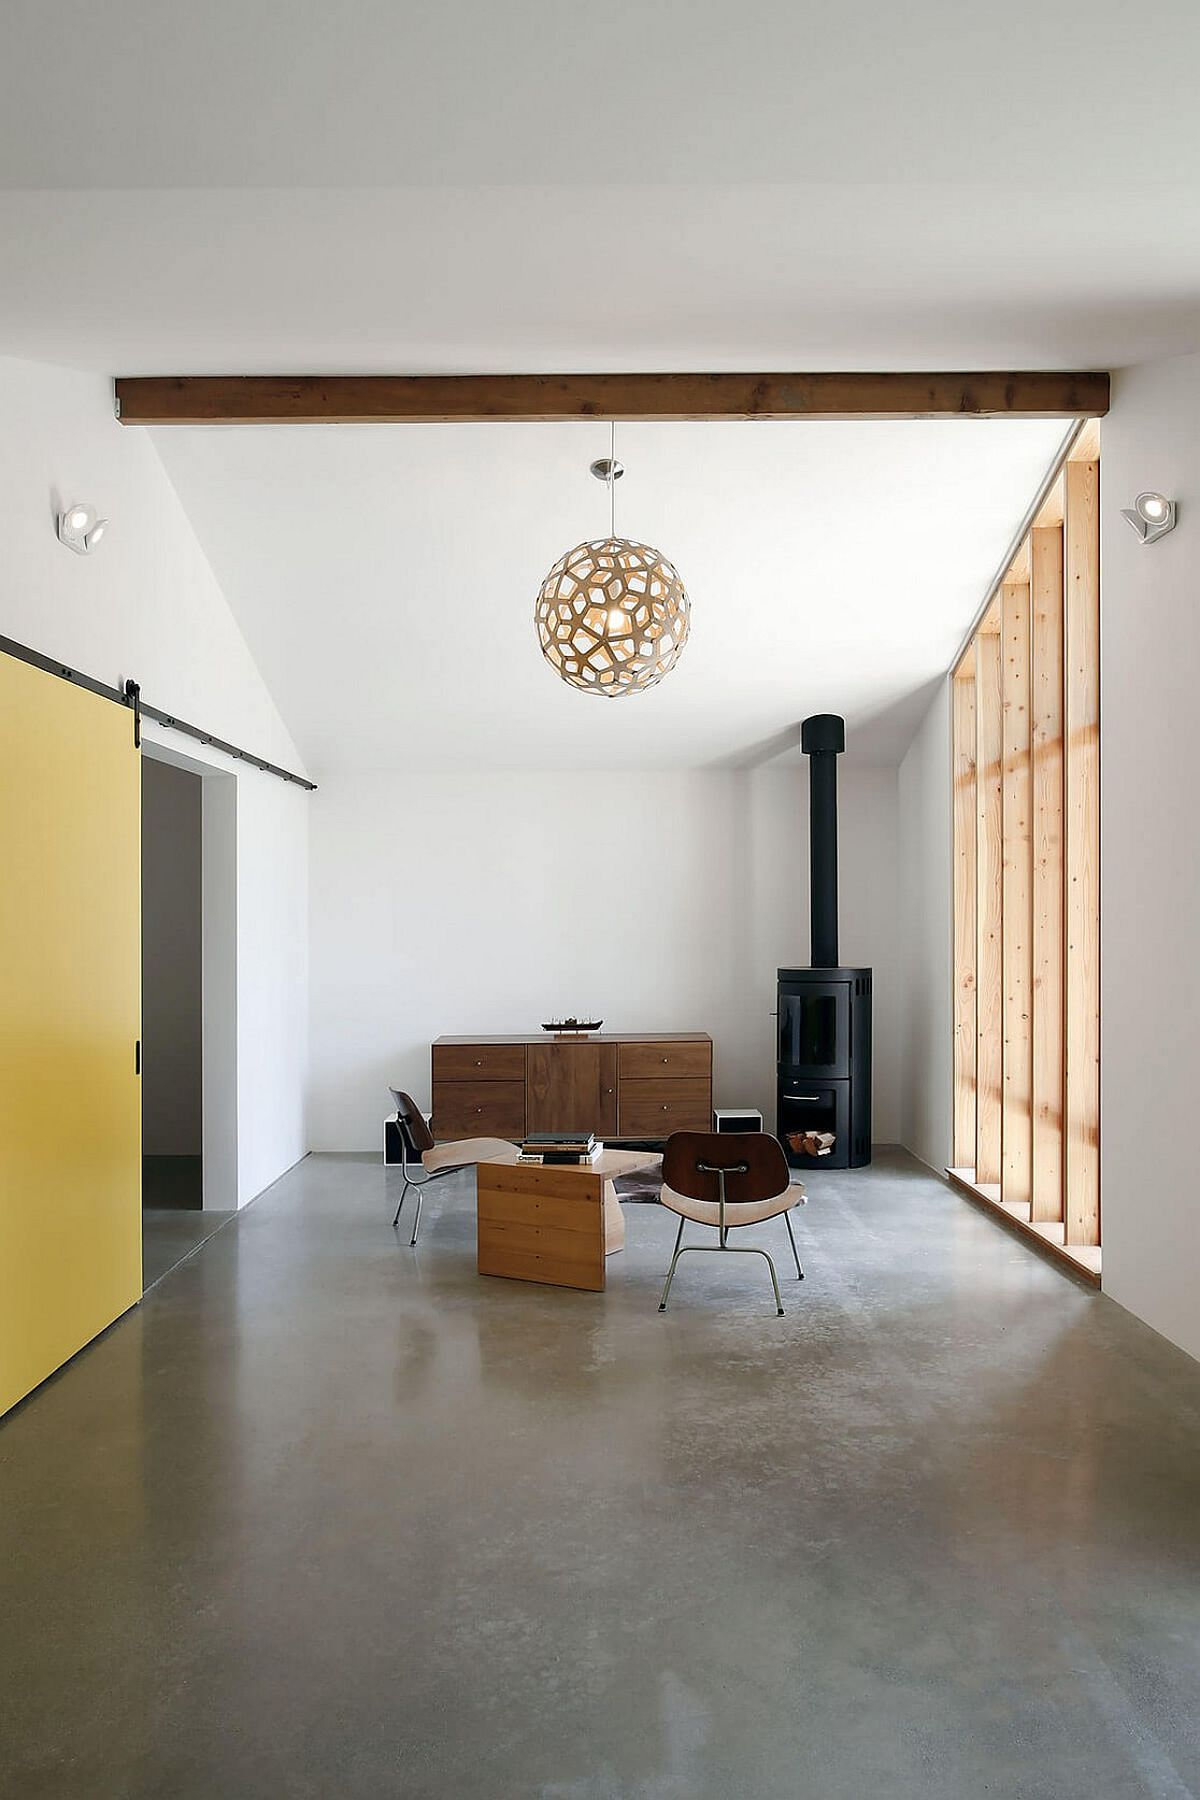 Sloped and high ceiling of the stable comes in handy while creating the new, spacious studio